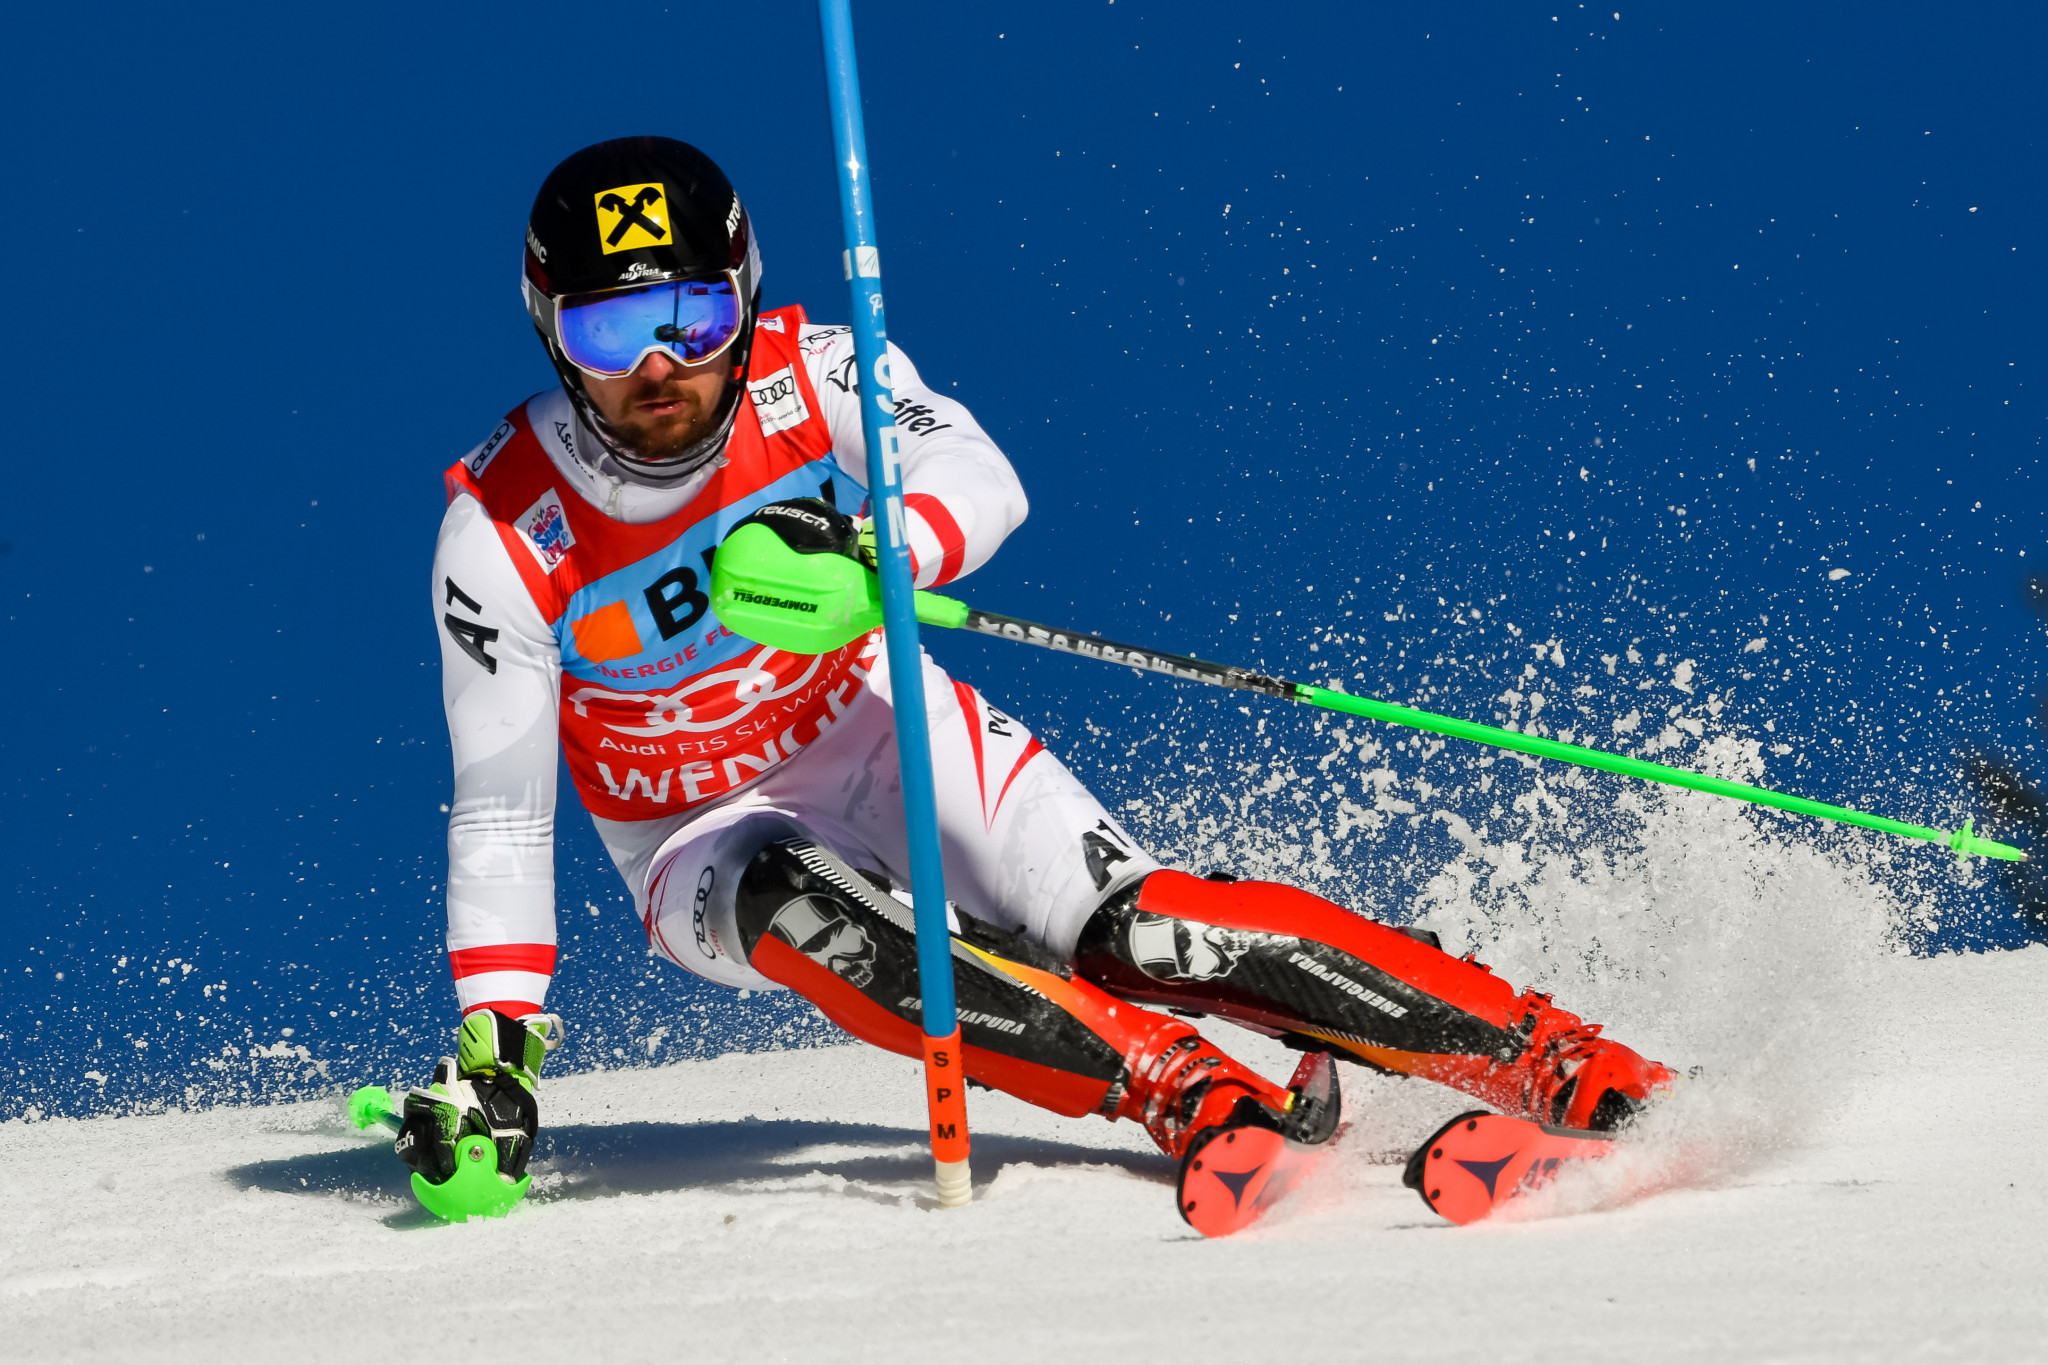 Austria's Marcel Hirscher tops the men's slalom rankings this season after winning each of the last five slalom events on the World Cup calendar ©Getty Images